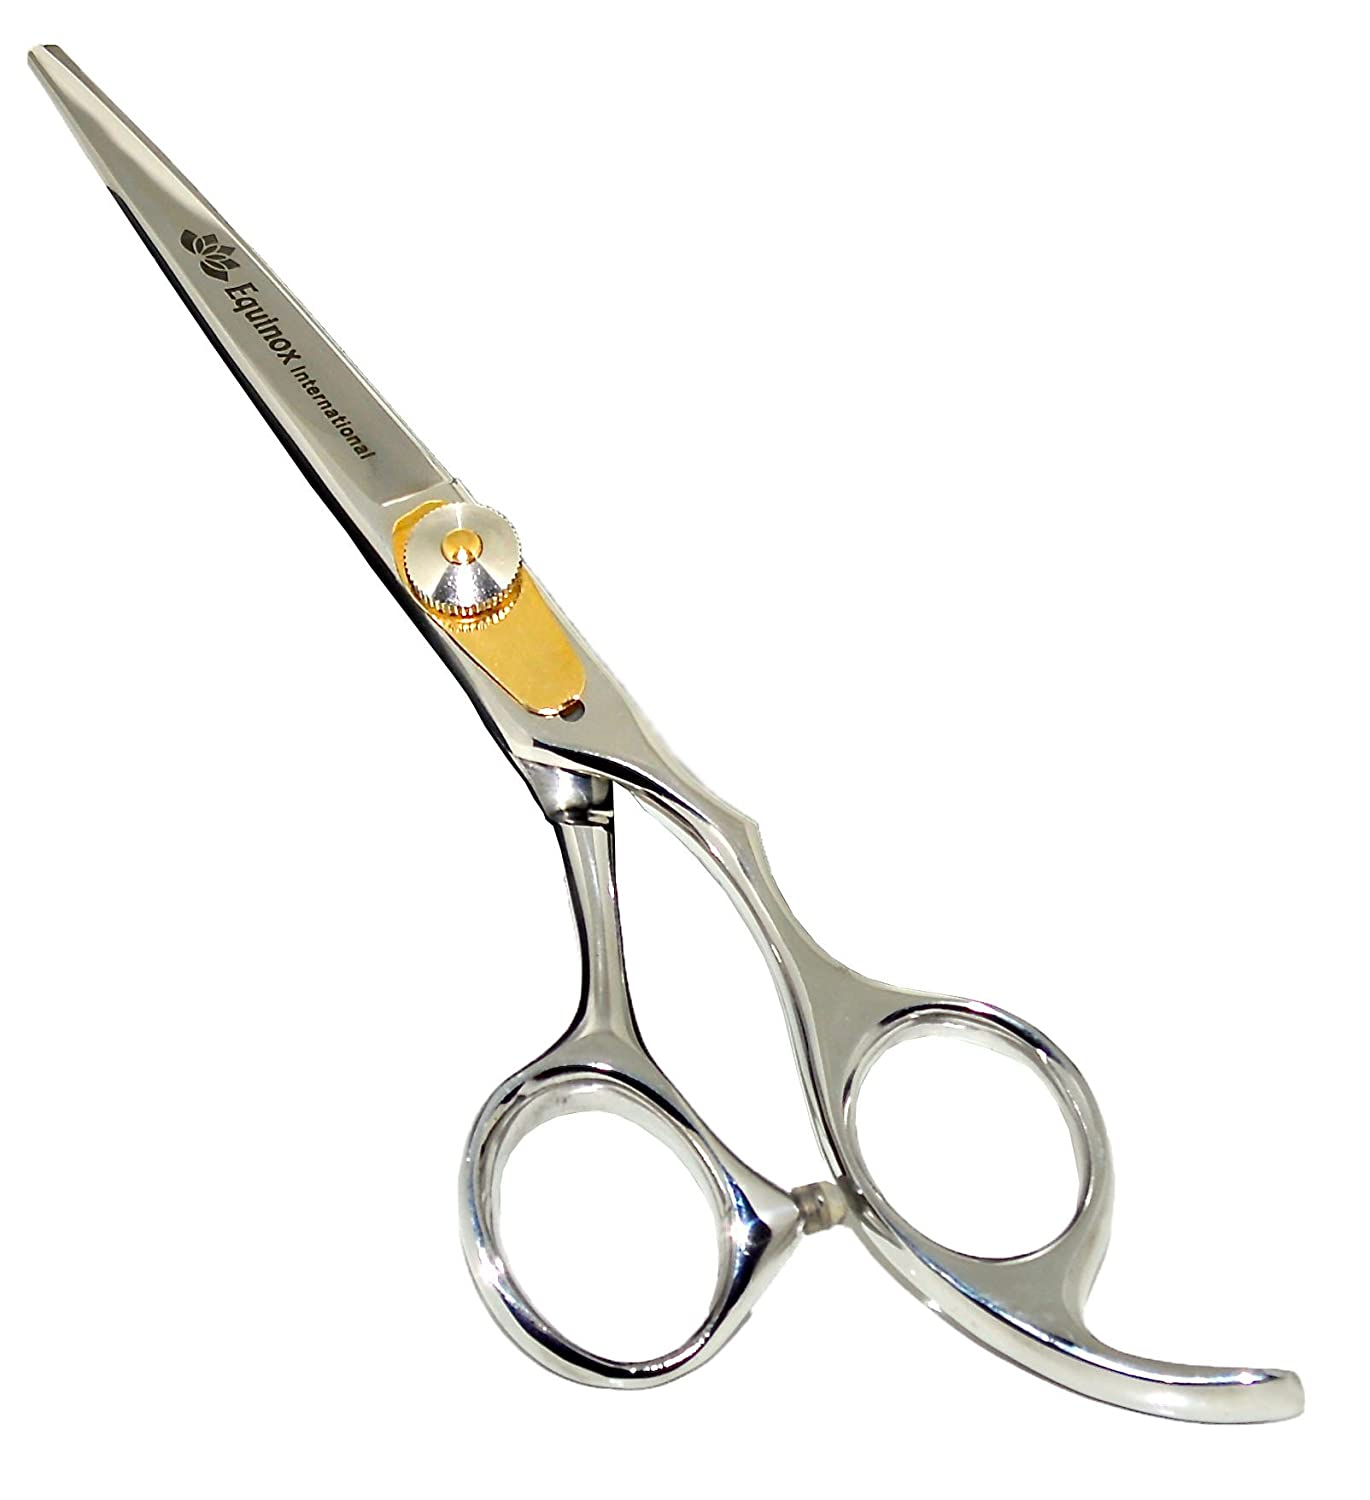 "Equinox Professional Razor Edge Series - Barber Hair Cutting Scissors/Shears - 6.5"" Overall Length with Fine Adjustment Tension Screw - Japanese Stainless Steel - Lifetime Guarantee"